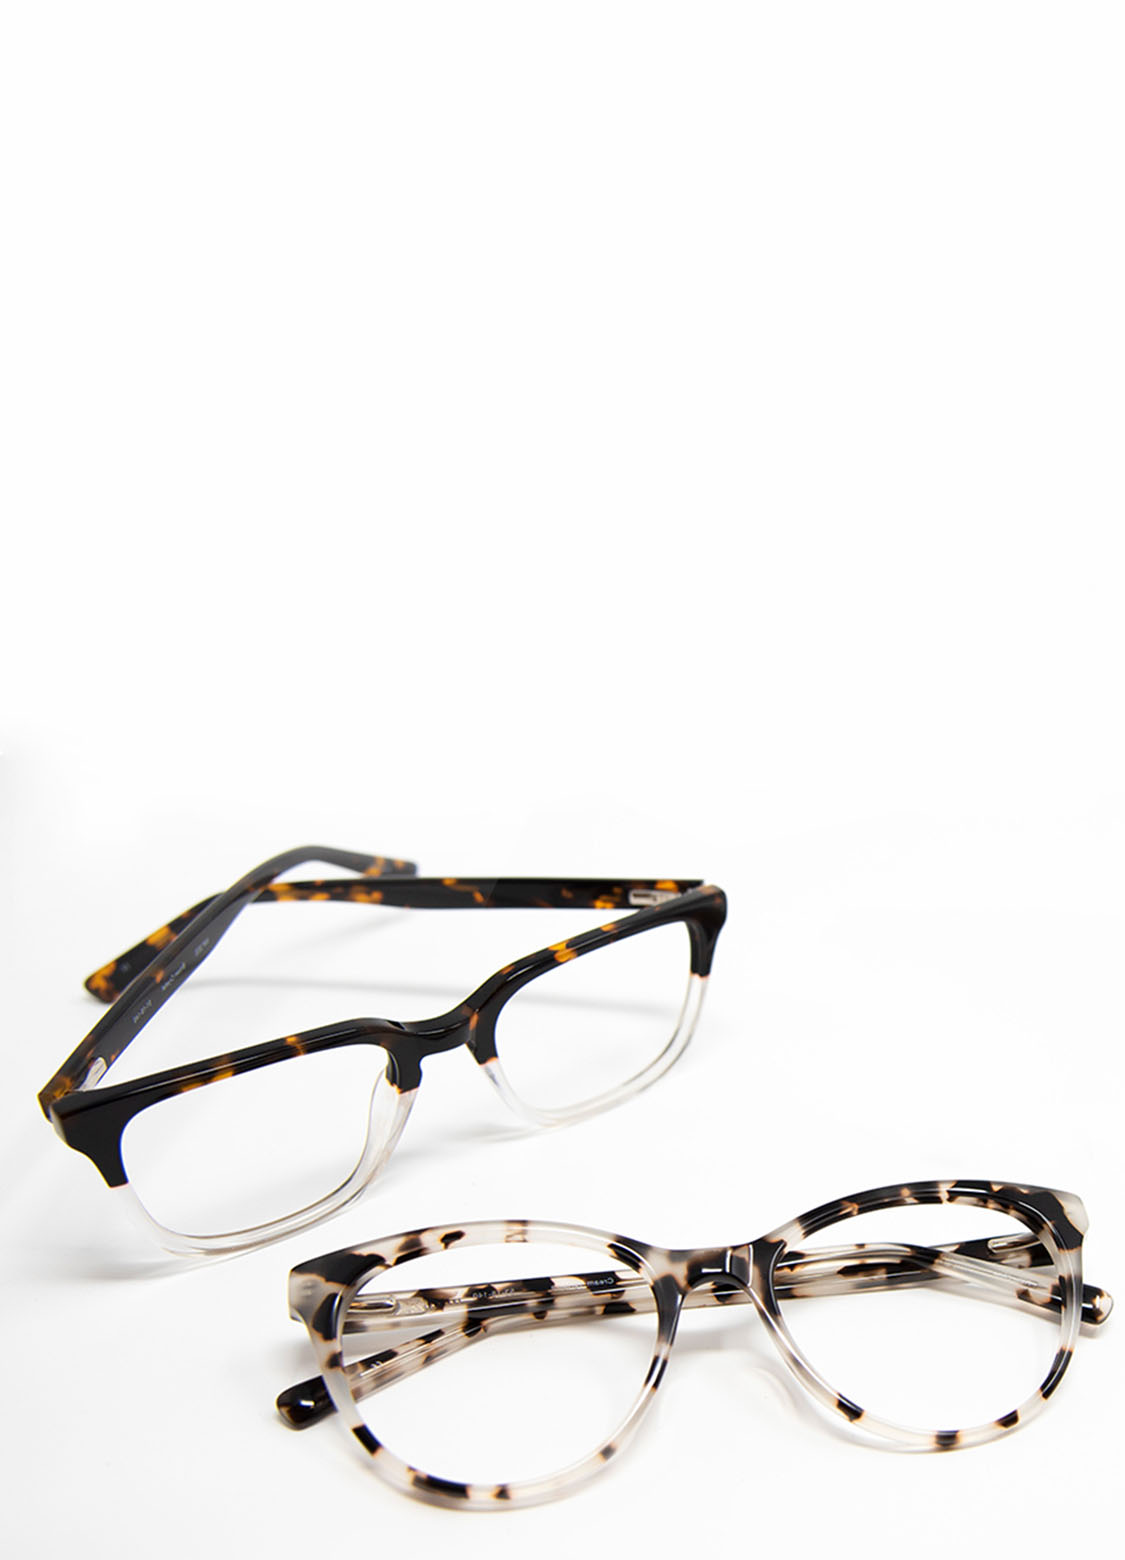 3 pairs of trendy glasses on white table